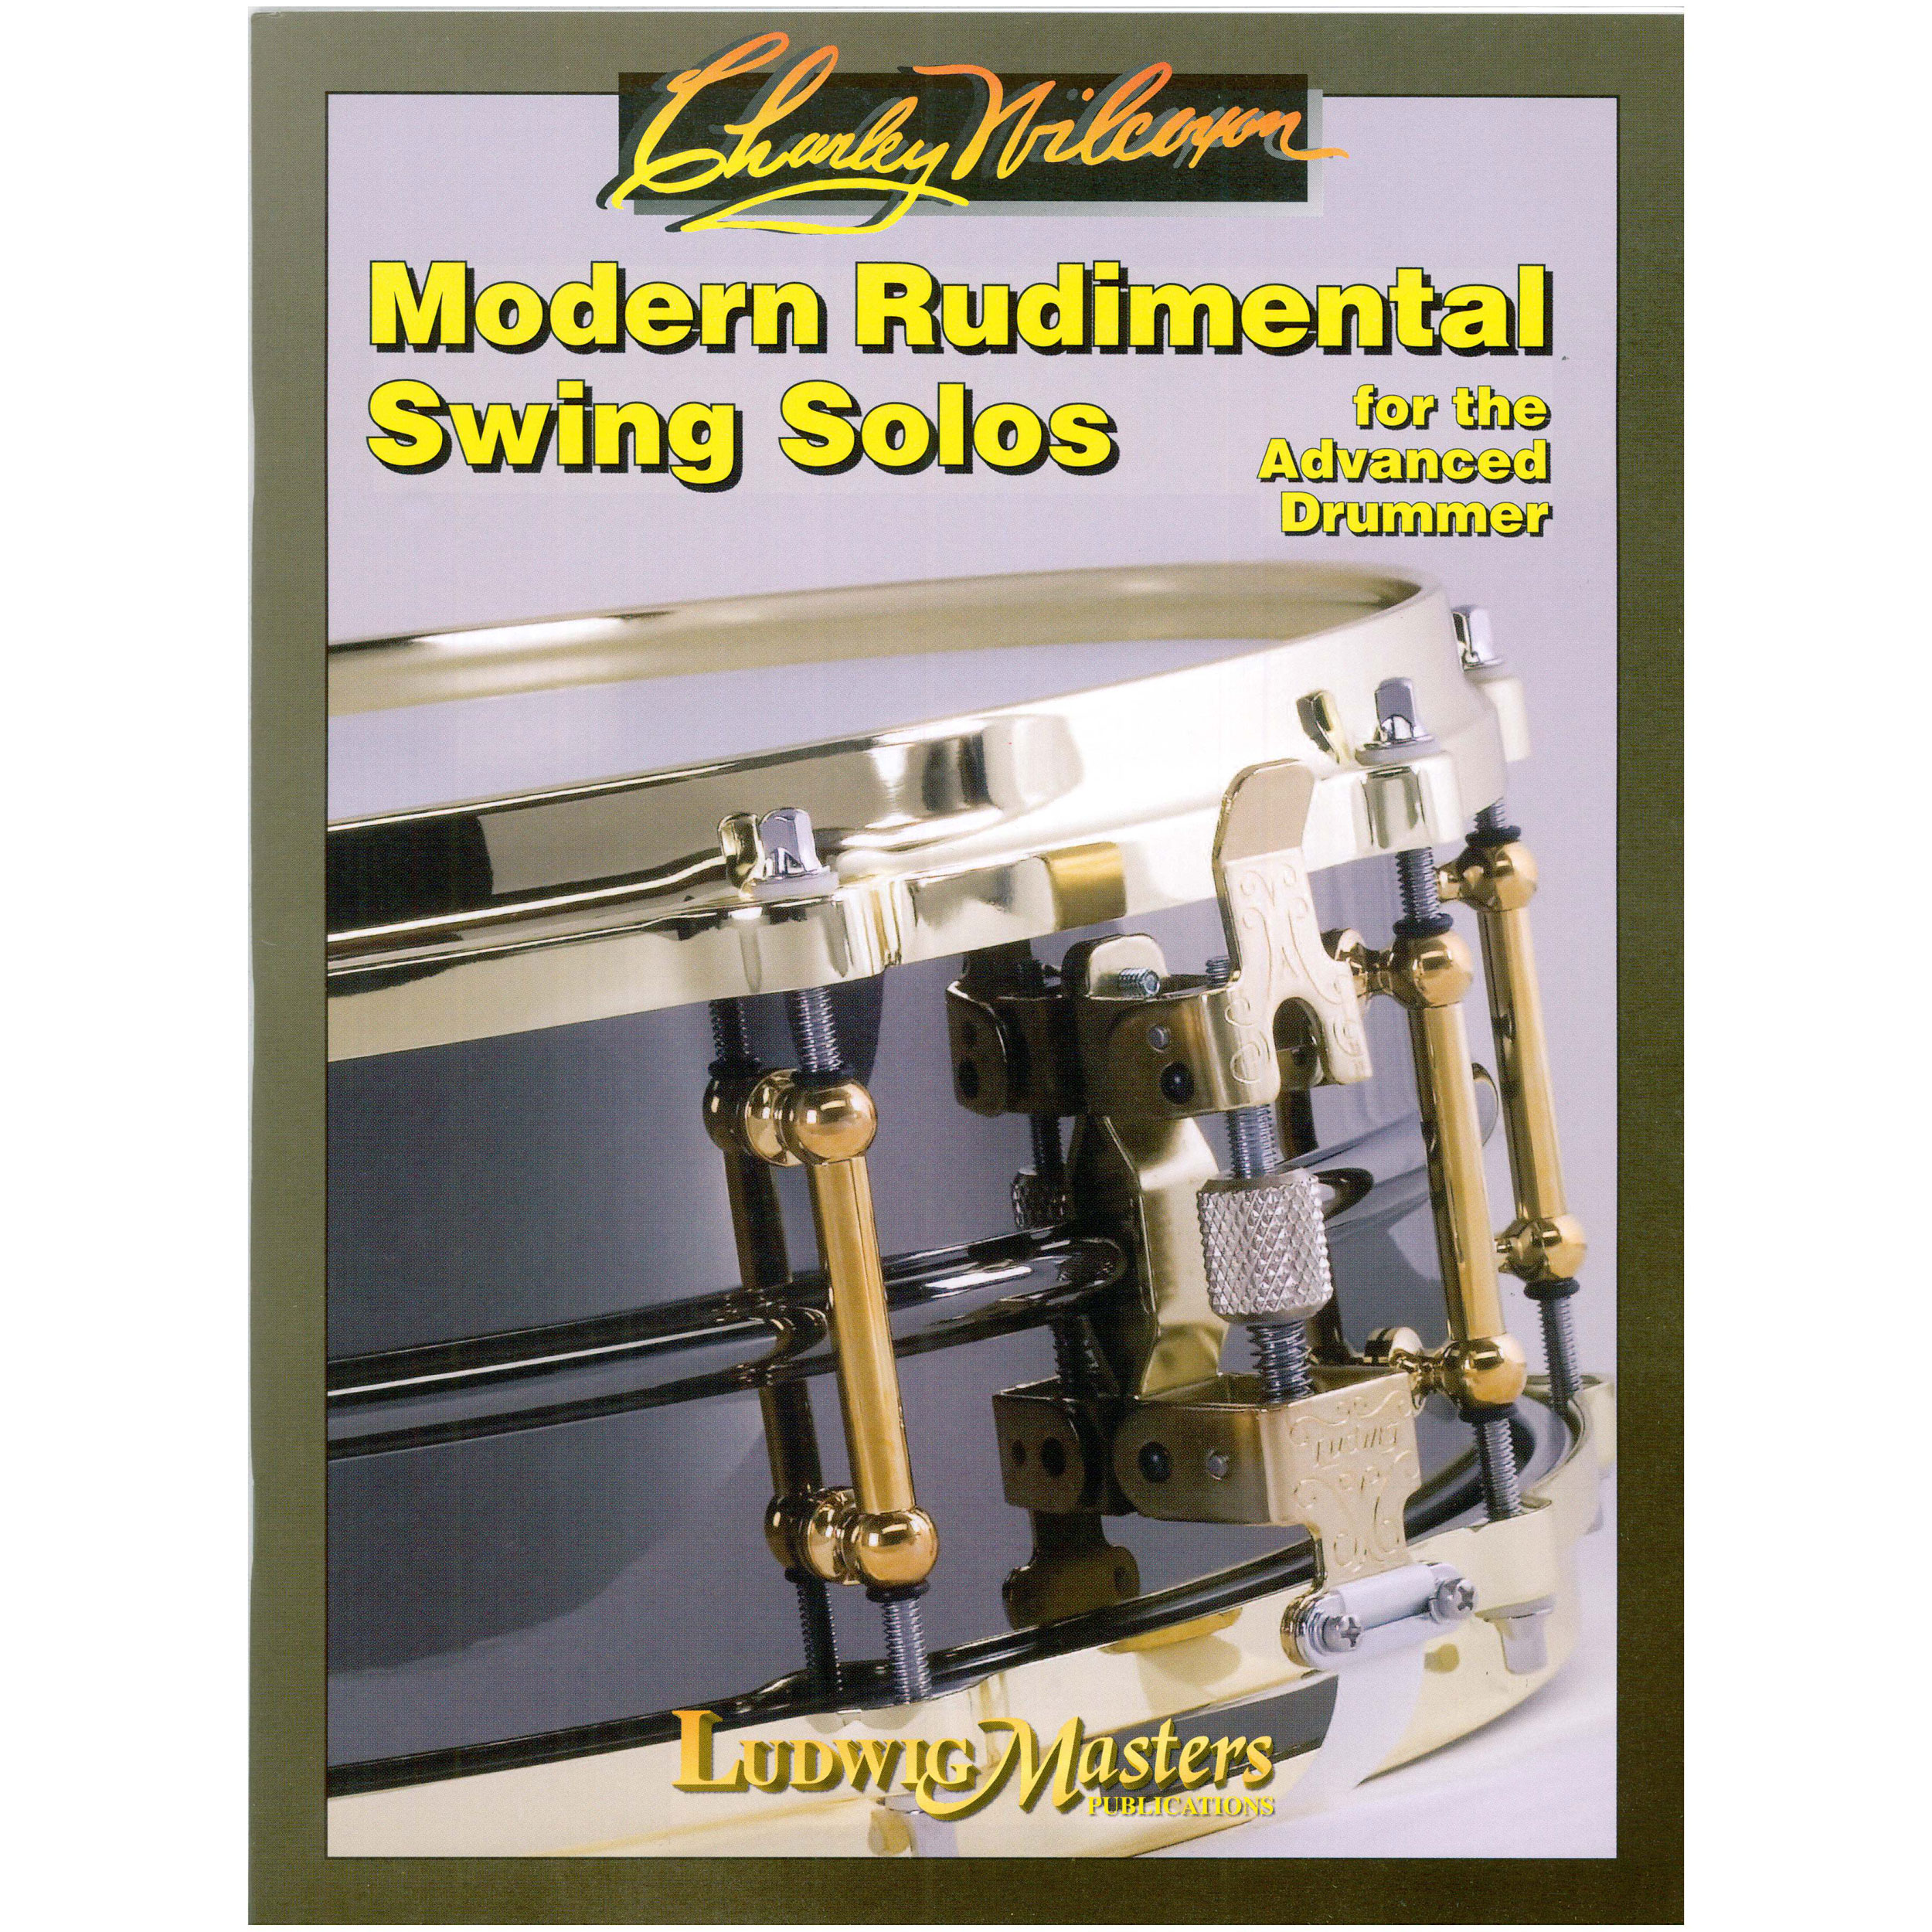 Modern Rudimental Swing Solos for the Advanced Snare Drummer by Charley Wilcoxon